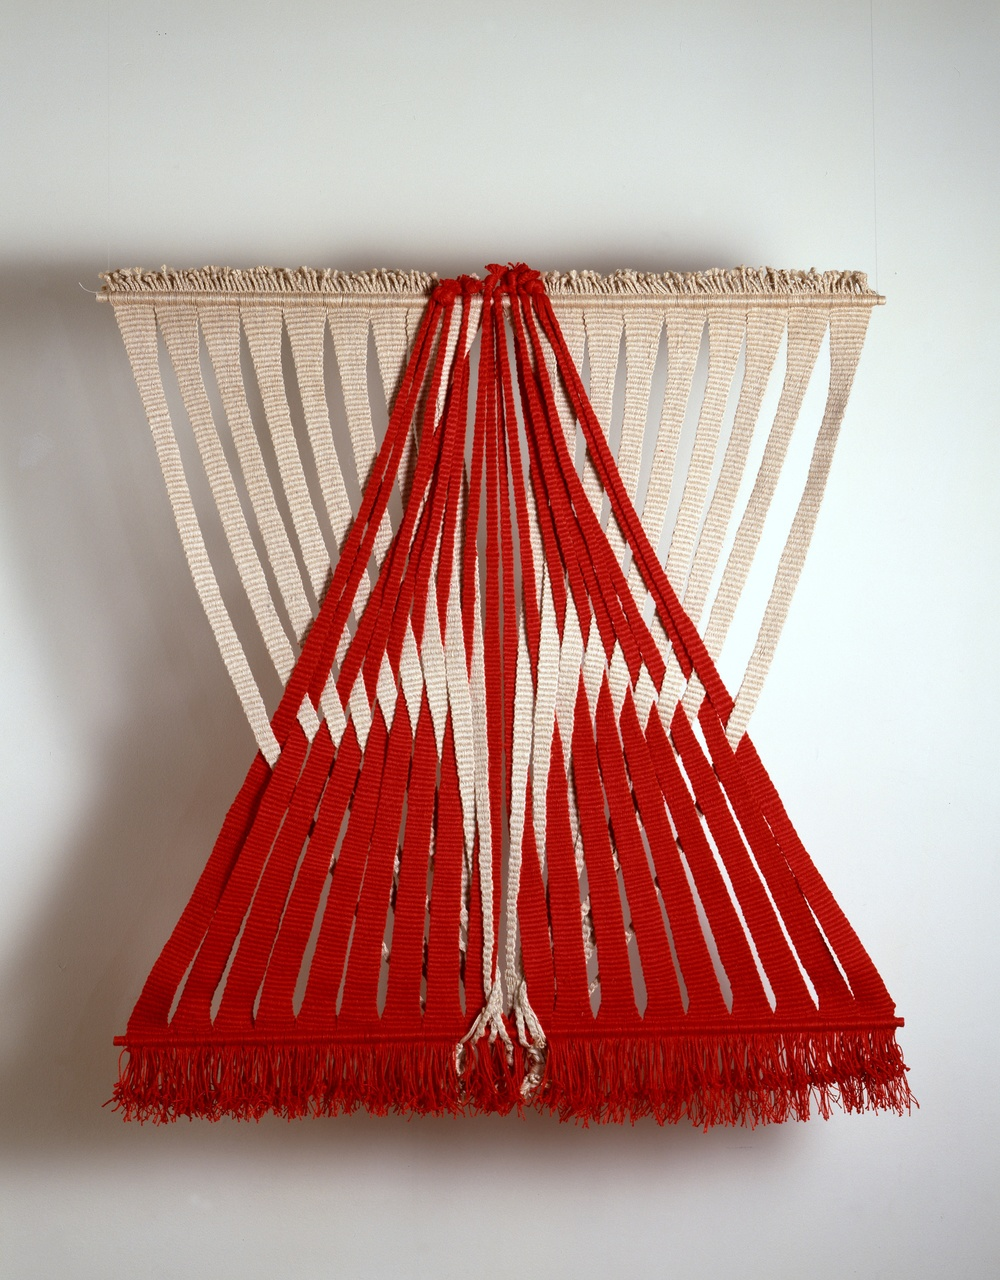 Lenore Tawney, Union of Water and Fire, 1974, Linen, 38 x 36 inches. Collection of Lenore G. Tawney Foundation.